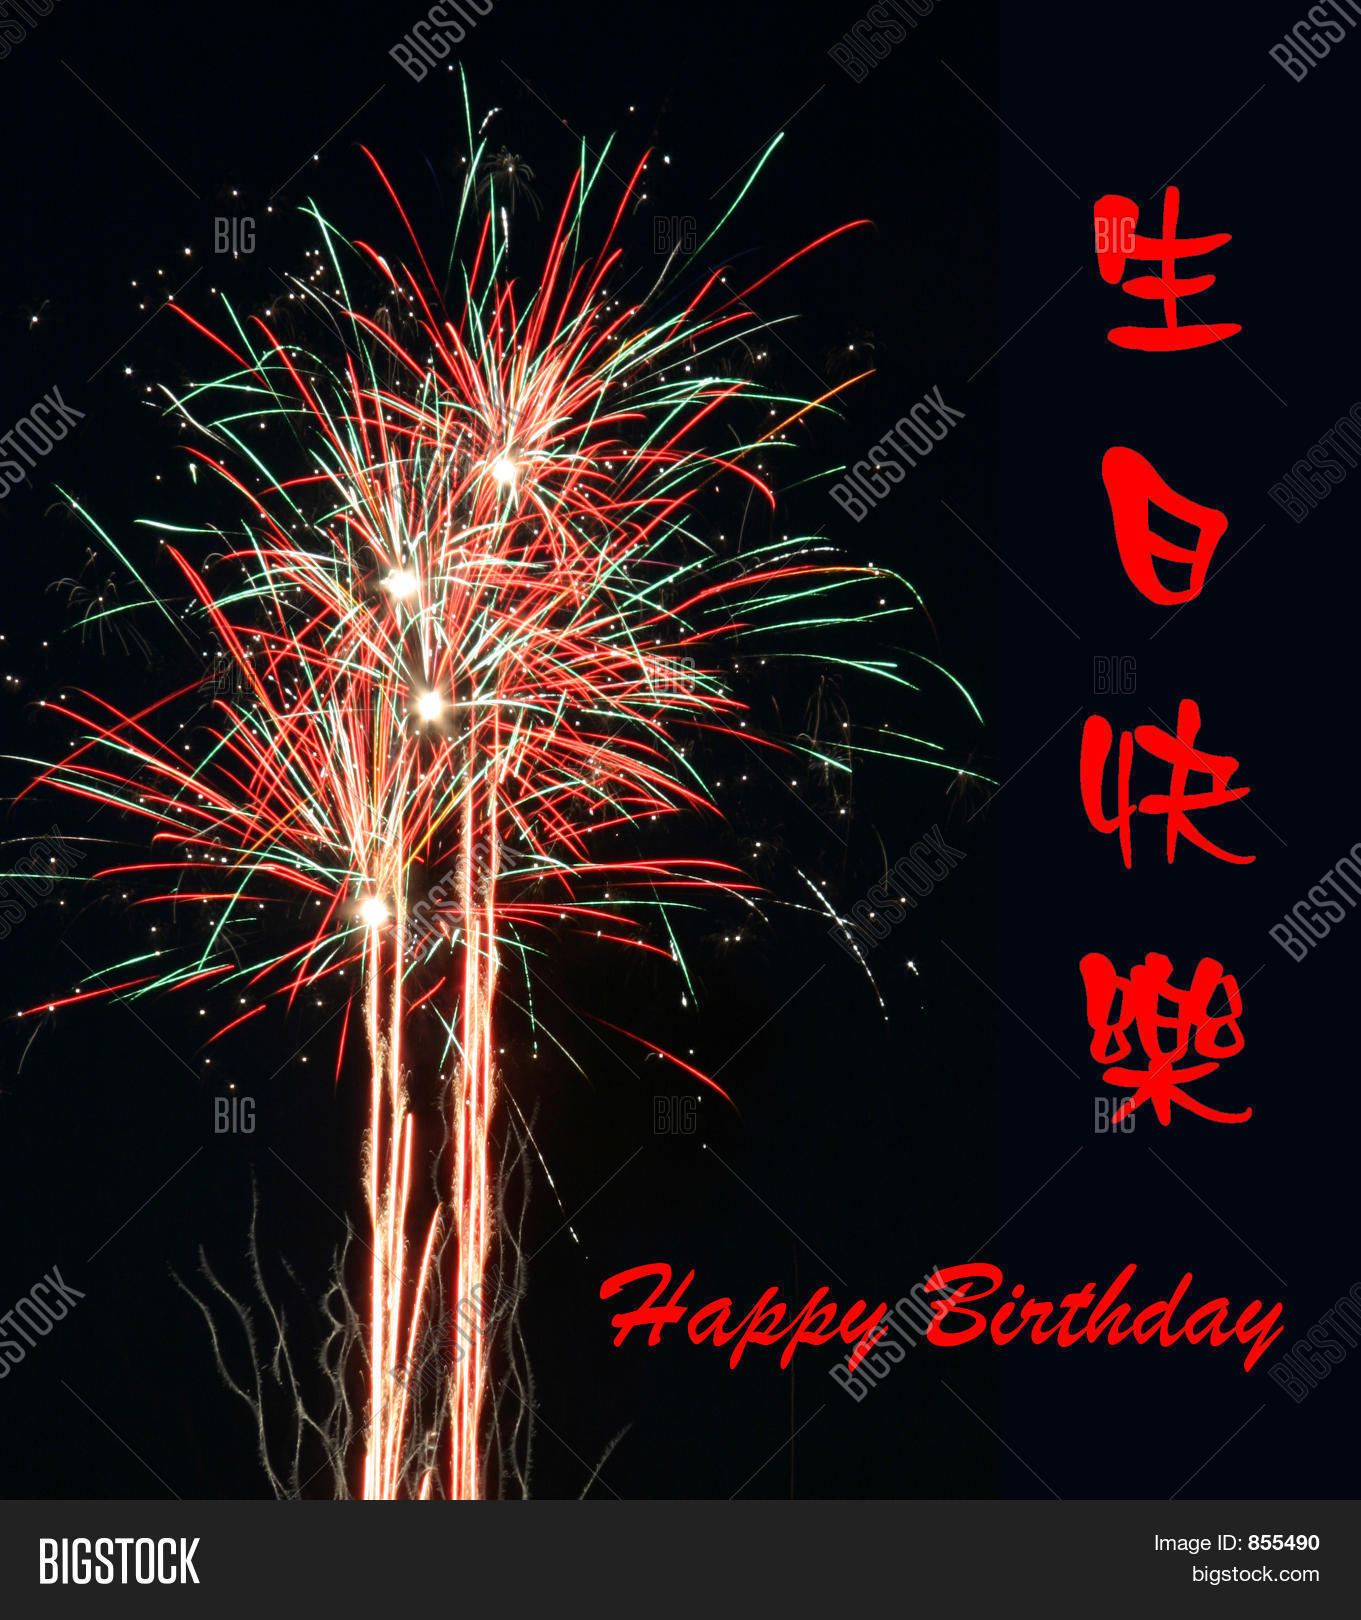 happy birthday in chinese image ; 855490